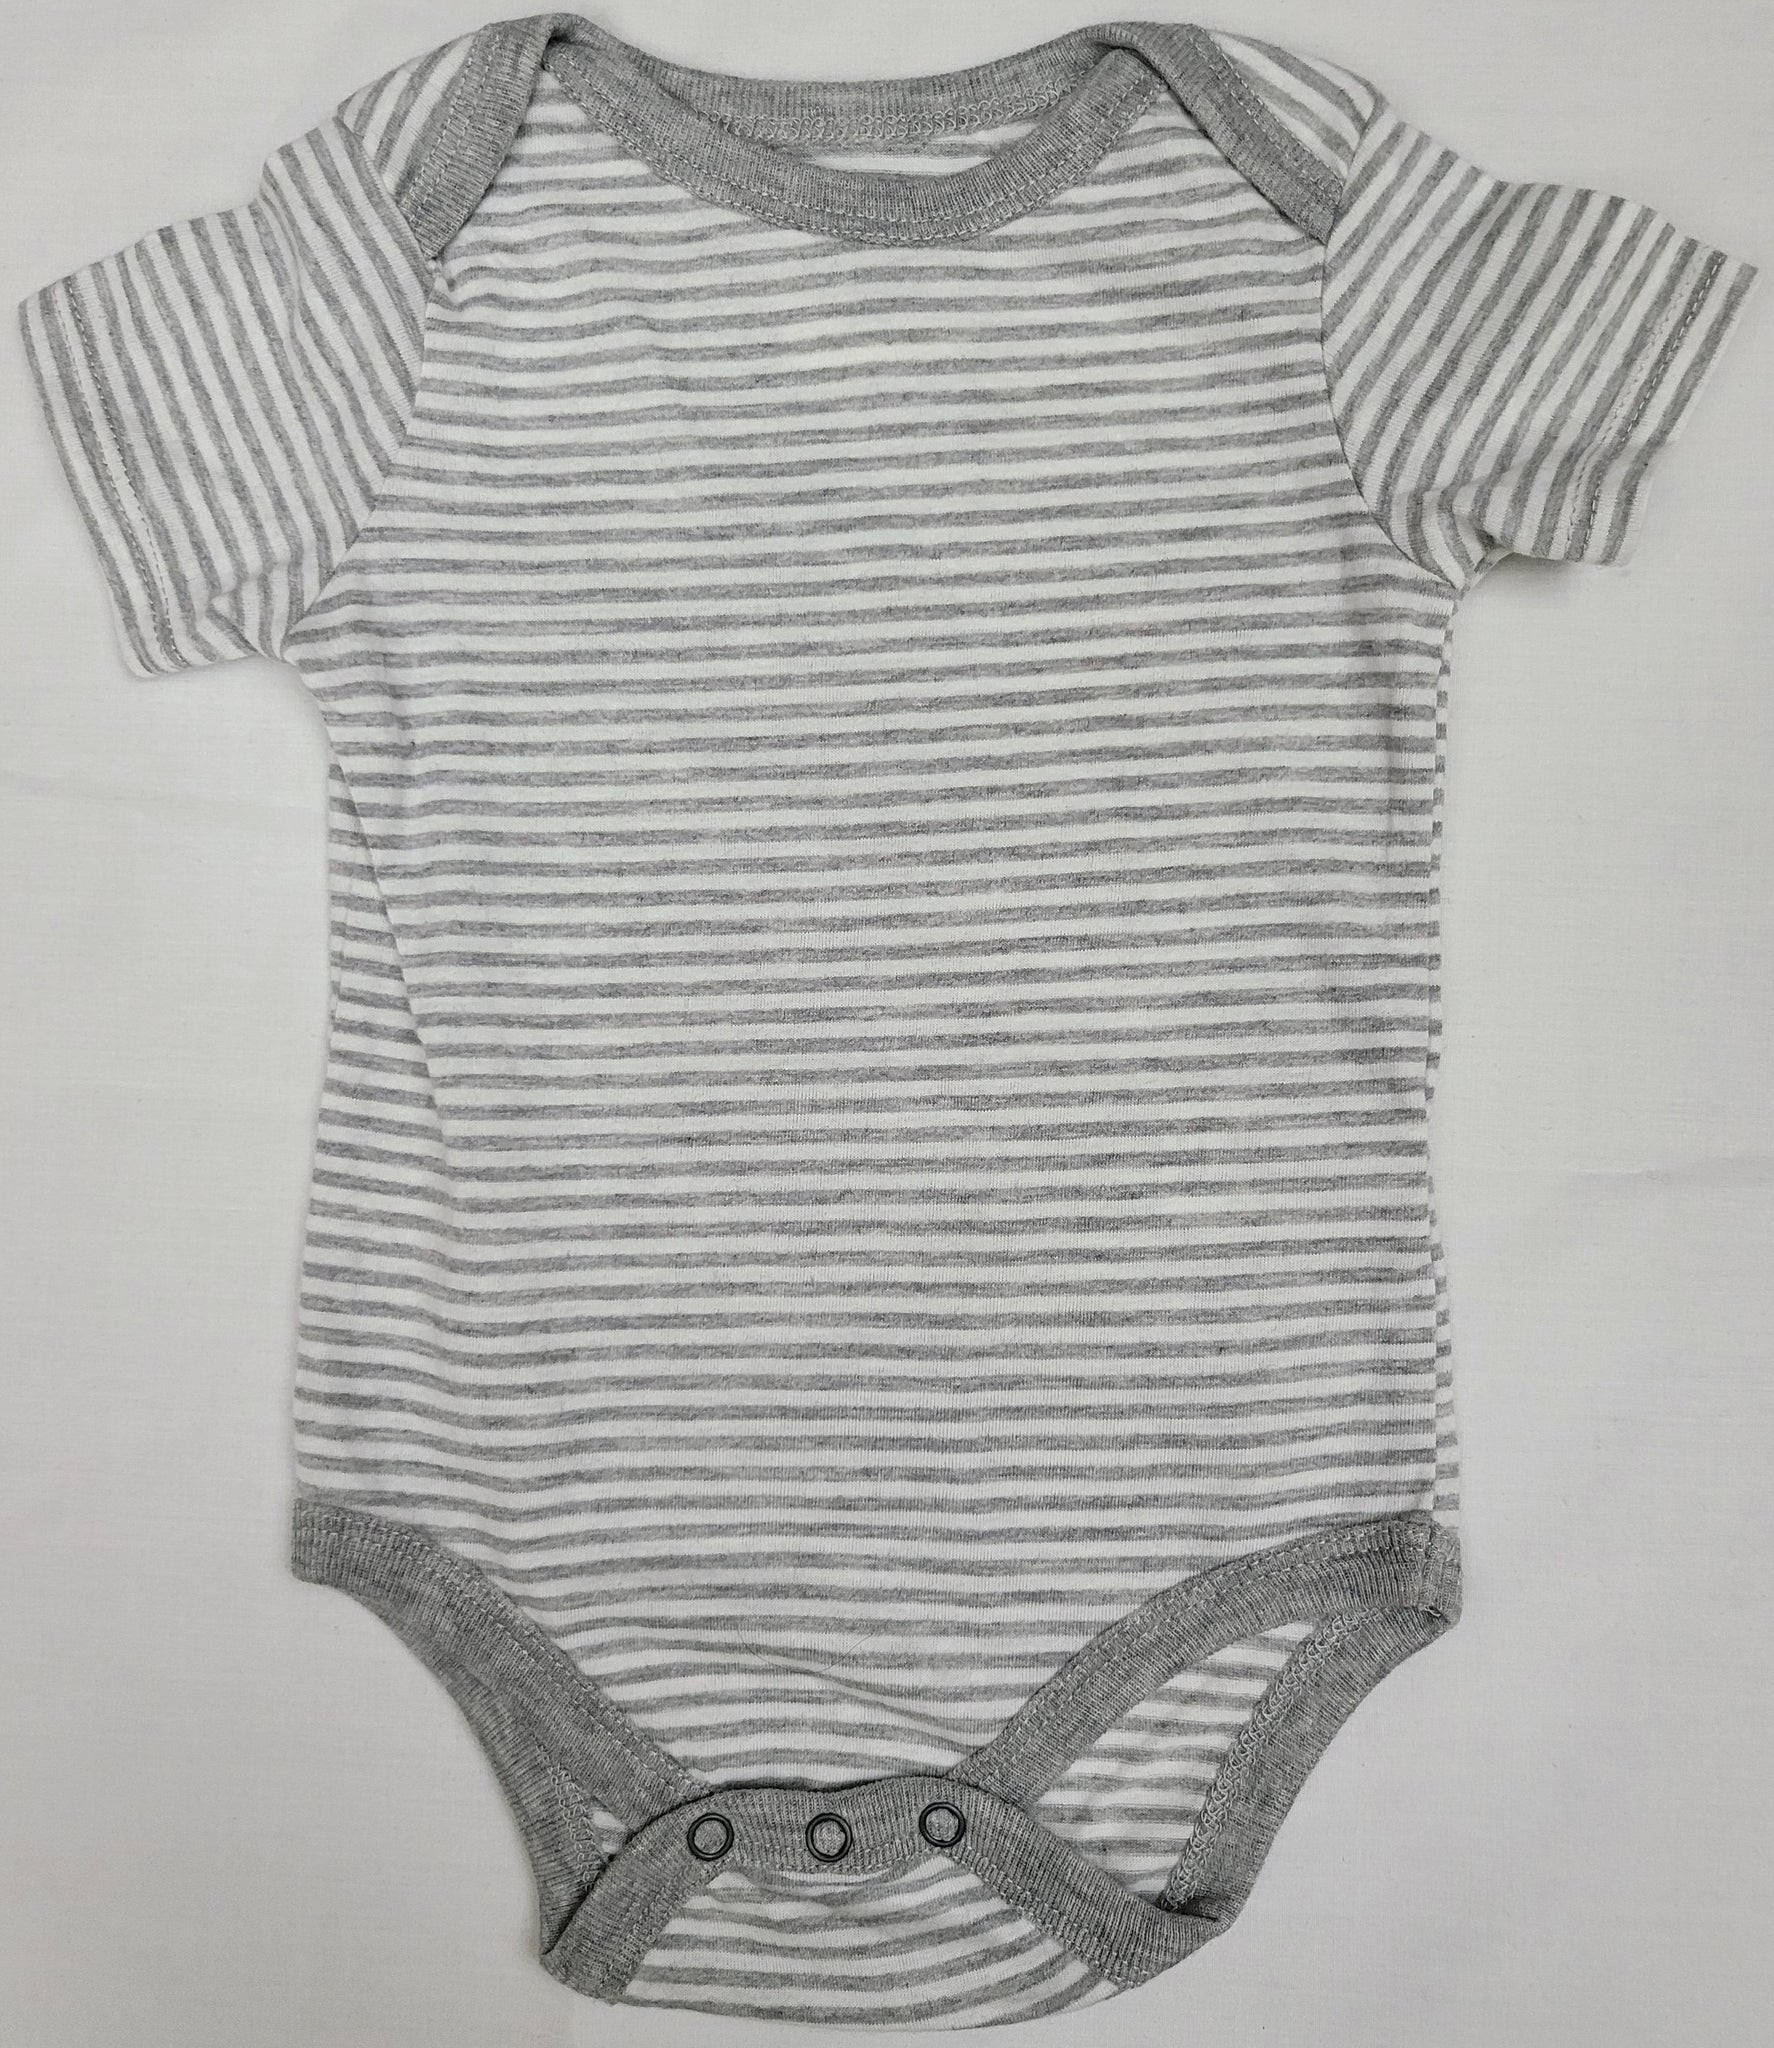 Stripes Afton Street Infant Baby Onesie